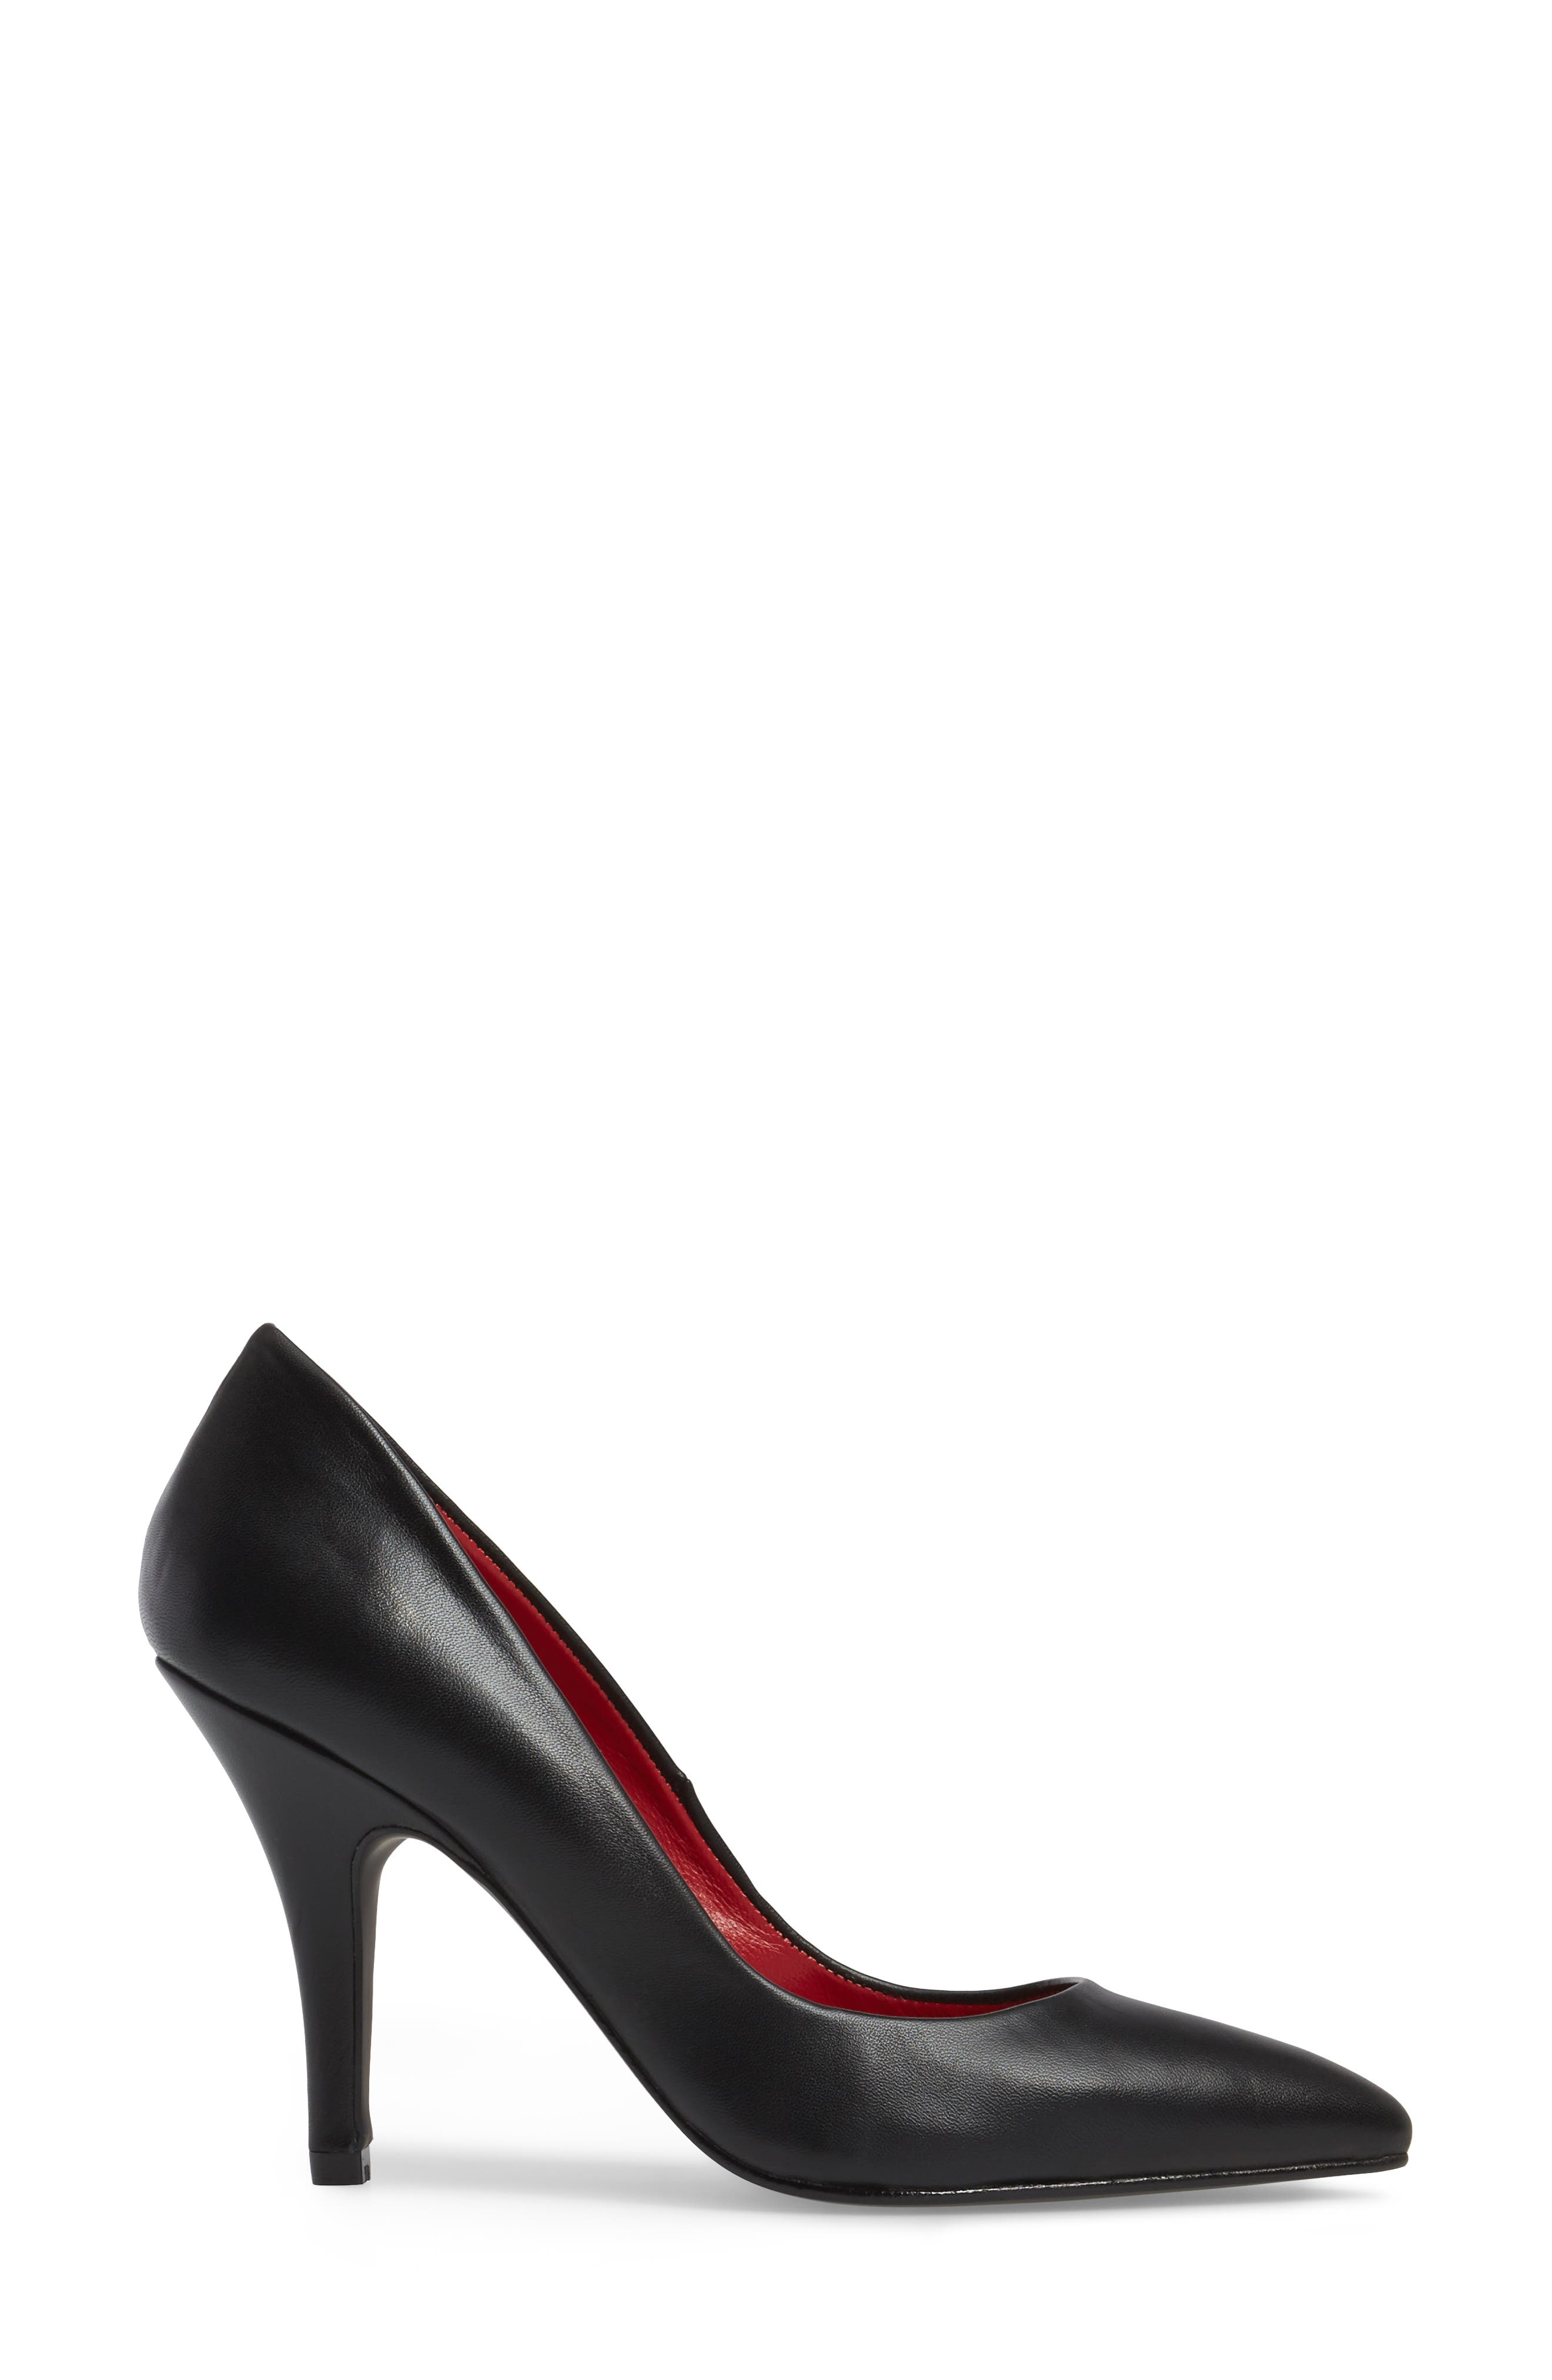 Sachi Pointy Toe Pump,                             Alternate thumbnail 3, color,                             001